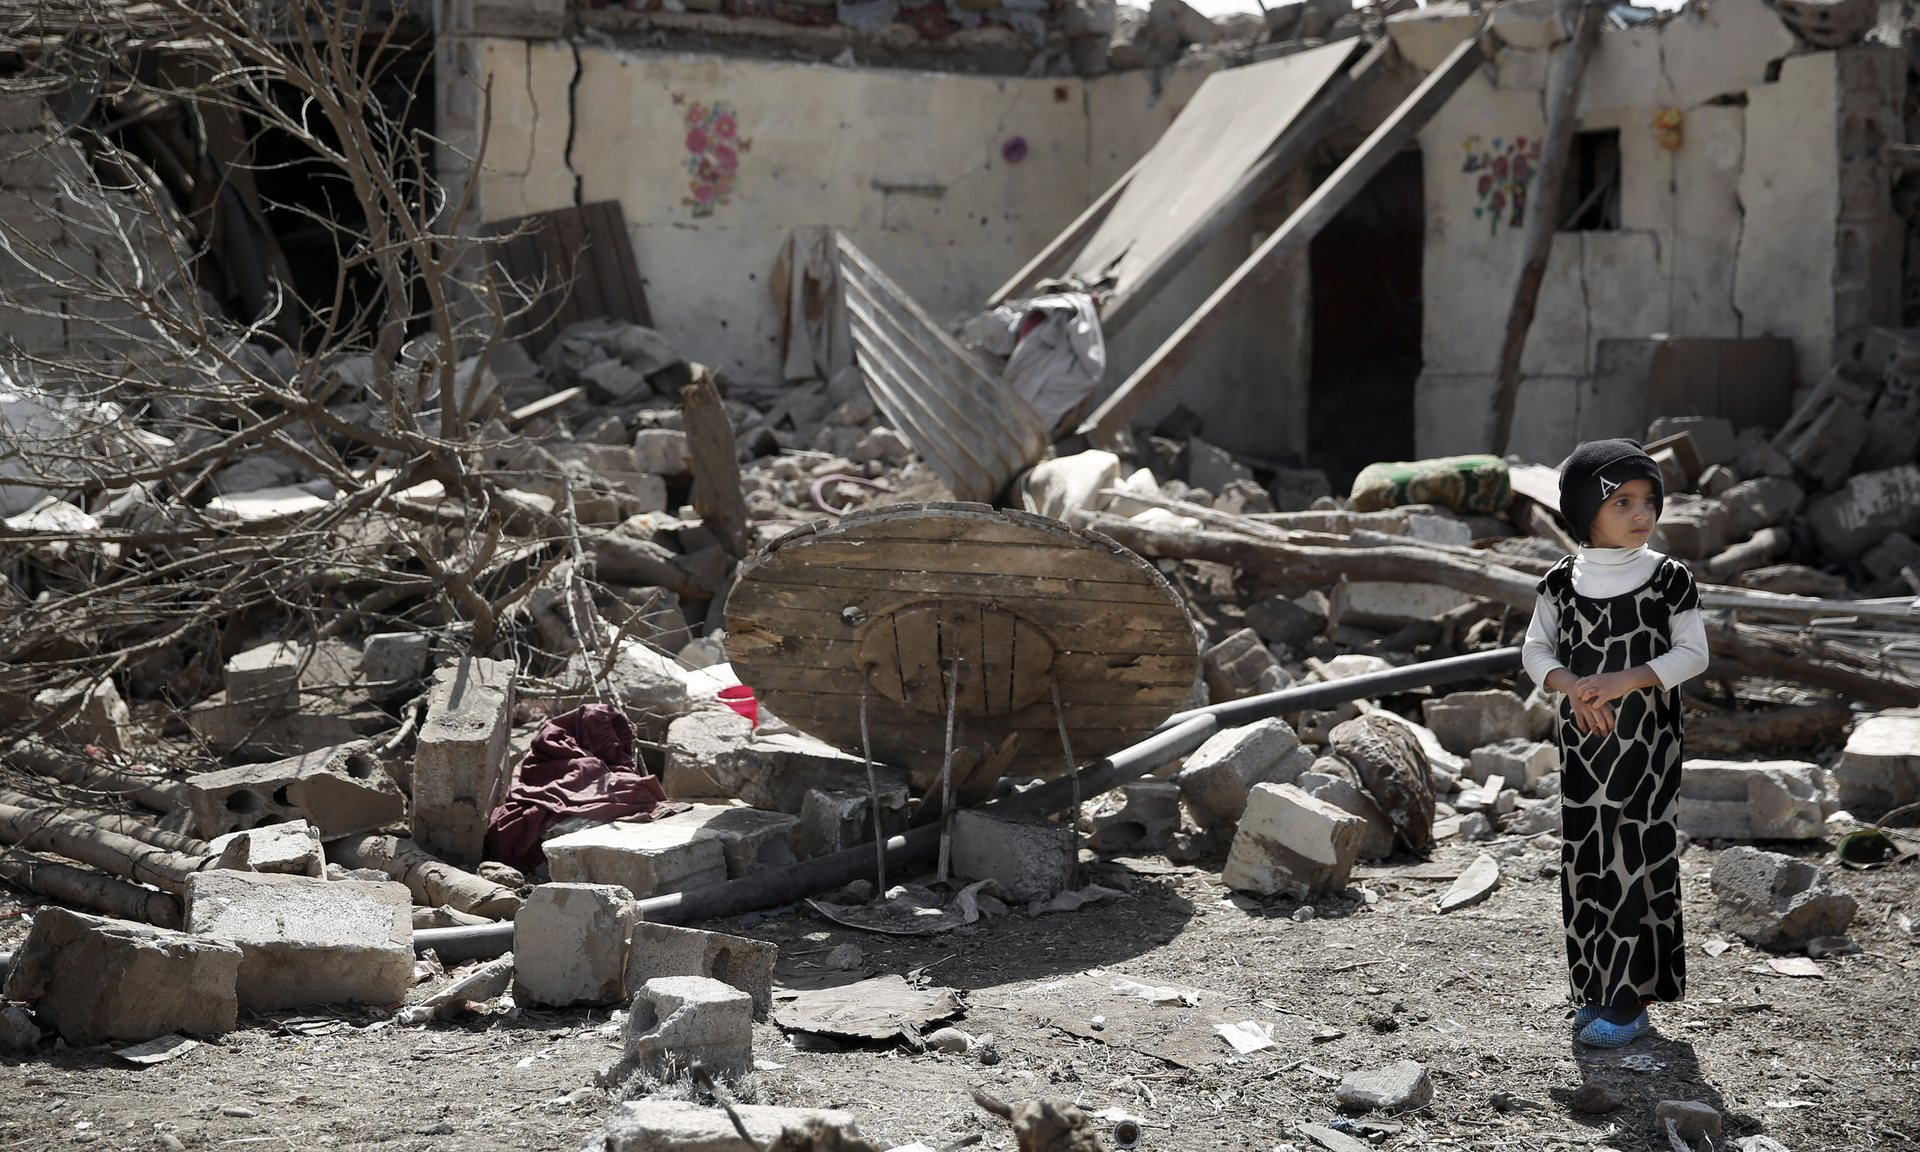 The remains of a house destroyed by a Saudi-led airstrike in Yemen's capital on Thursday. Photograph: Hani Mohammed/AP